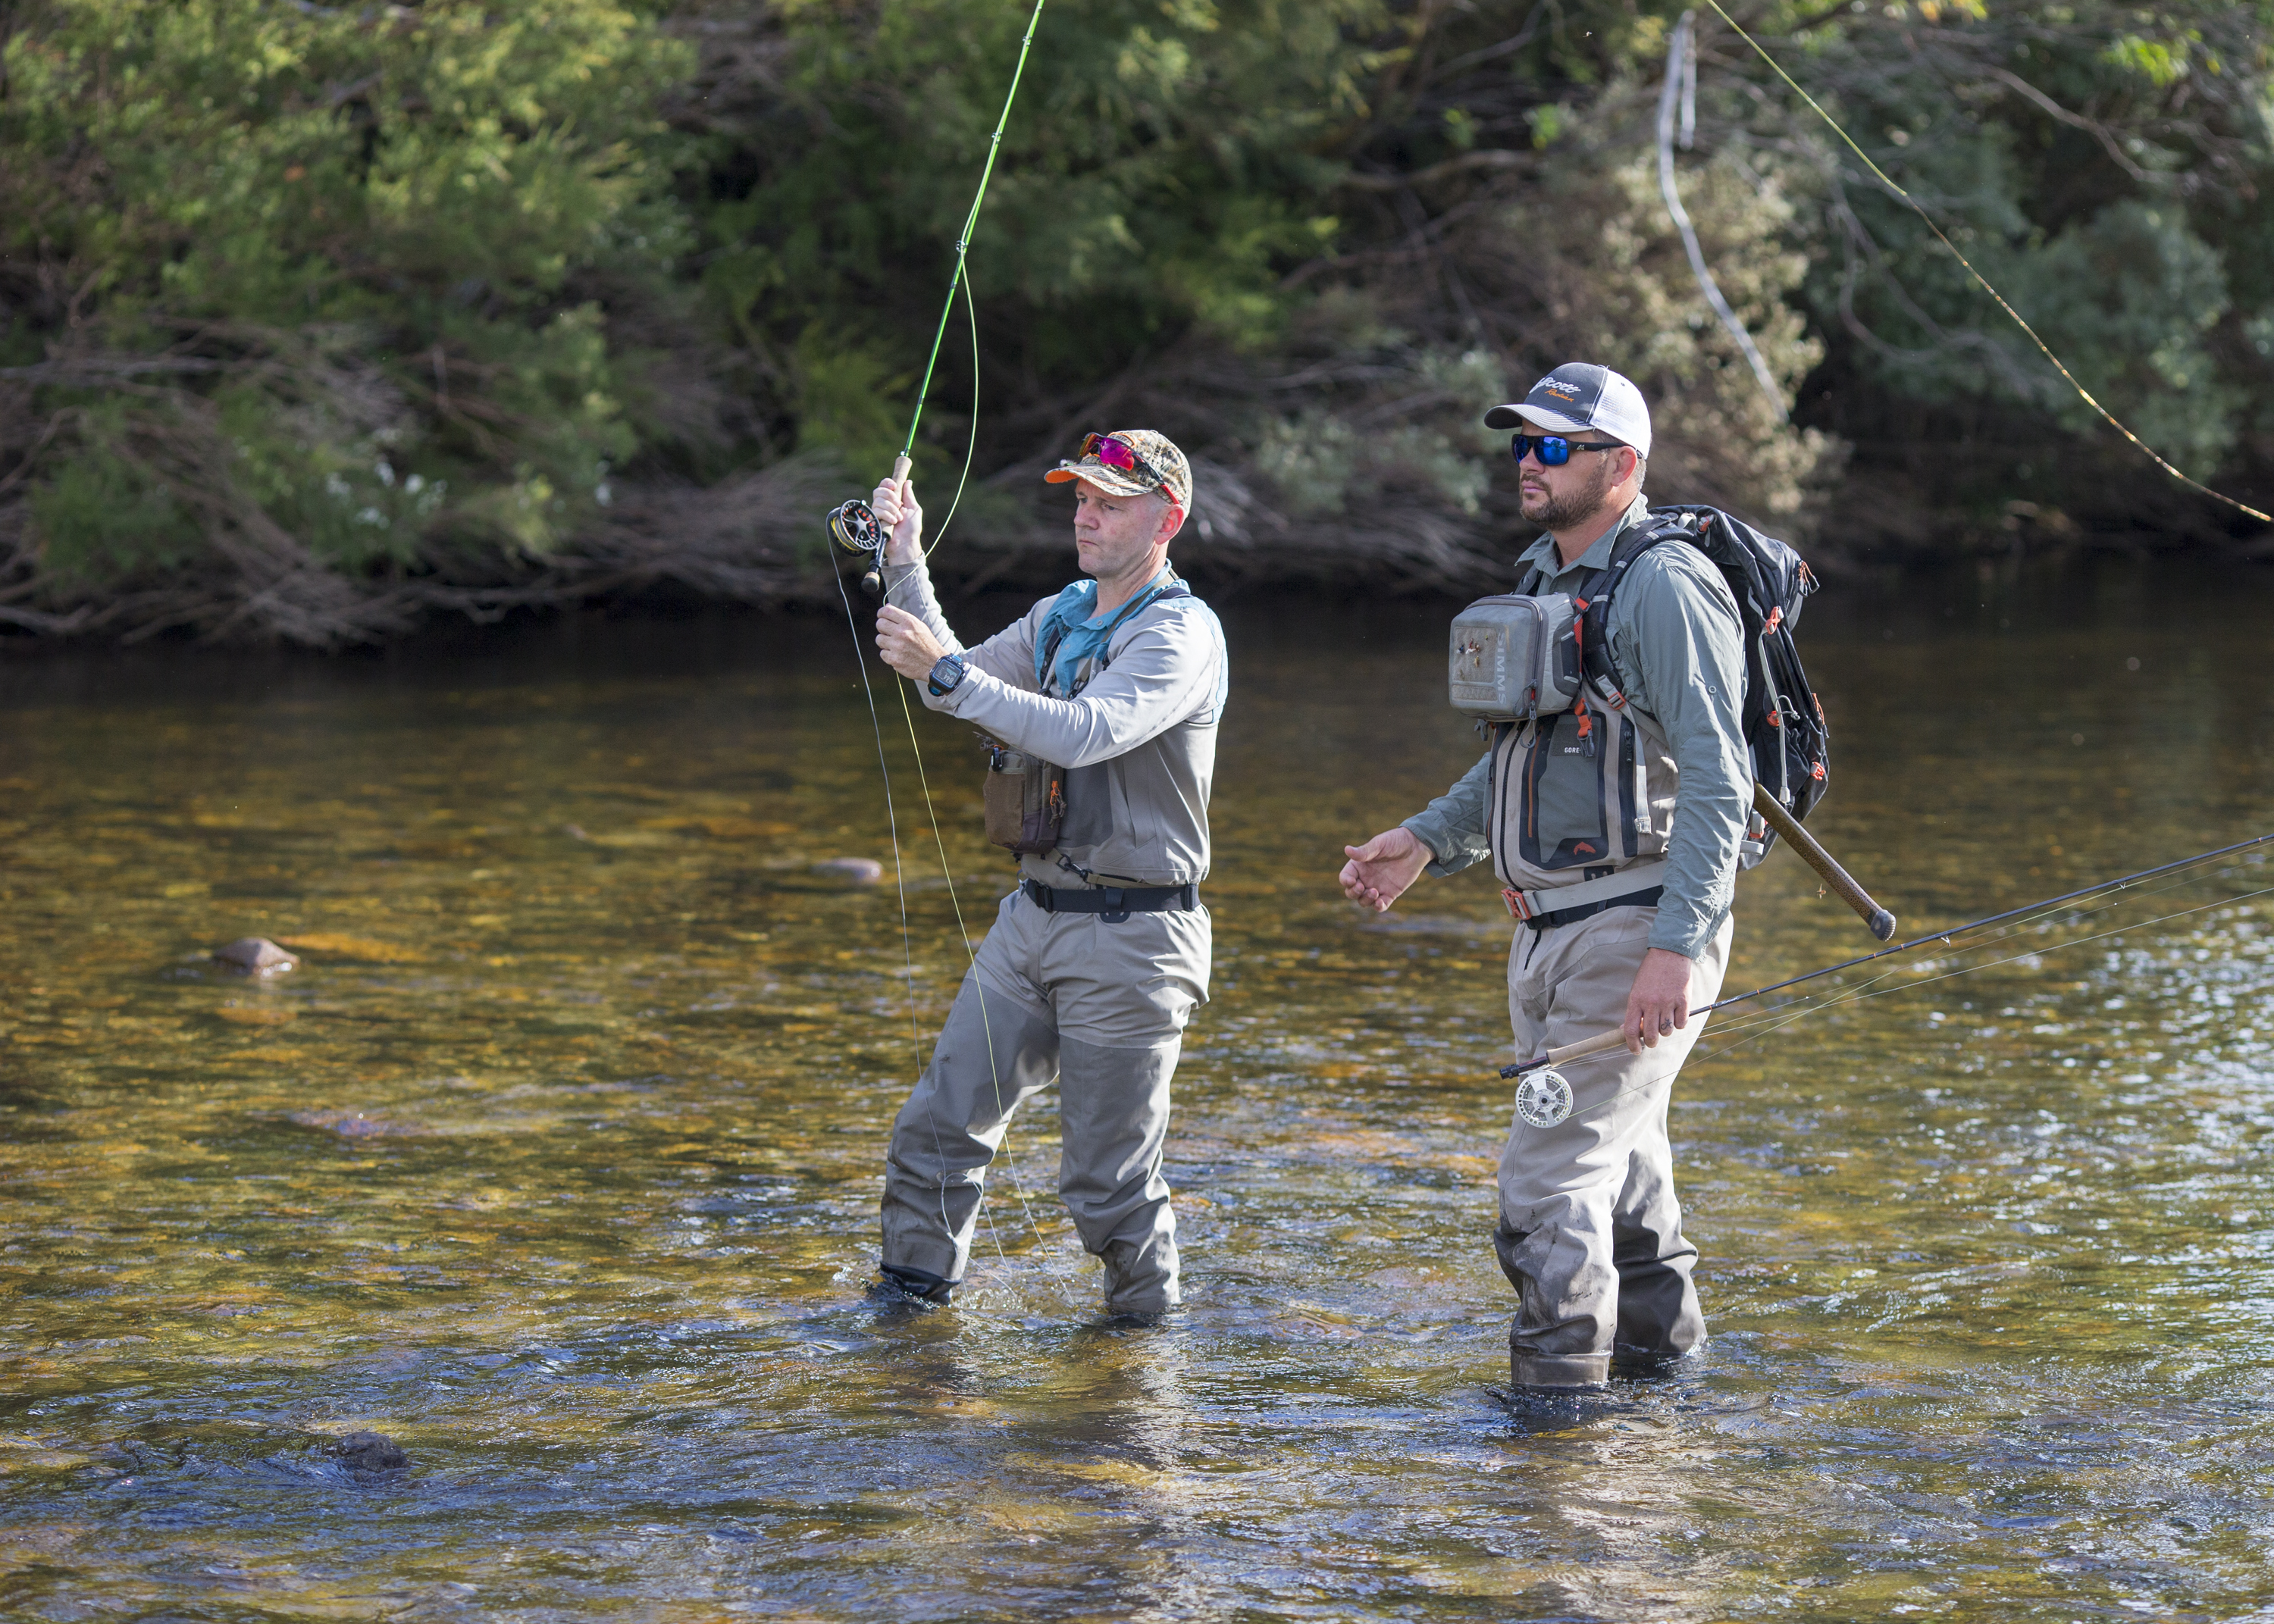 The Fly Program founder Matt Tripet takes an angler through the steps of fly fishing.